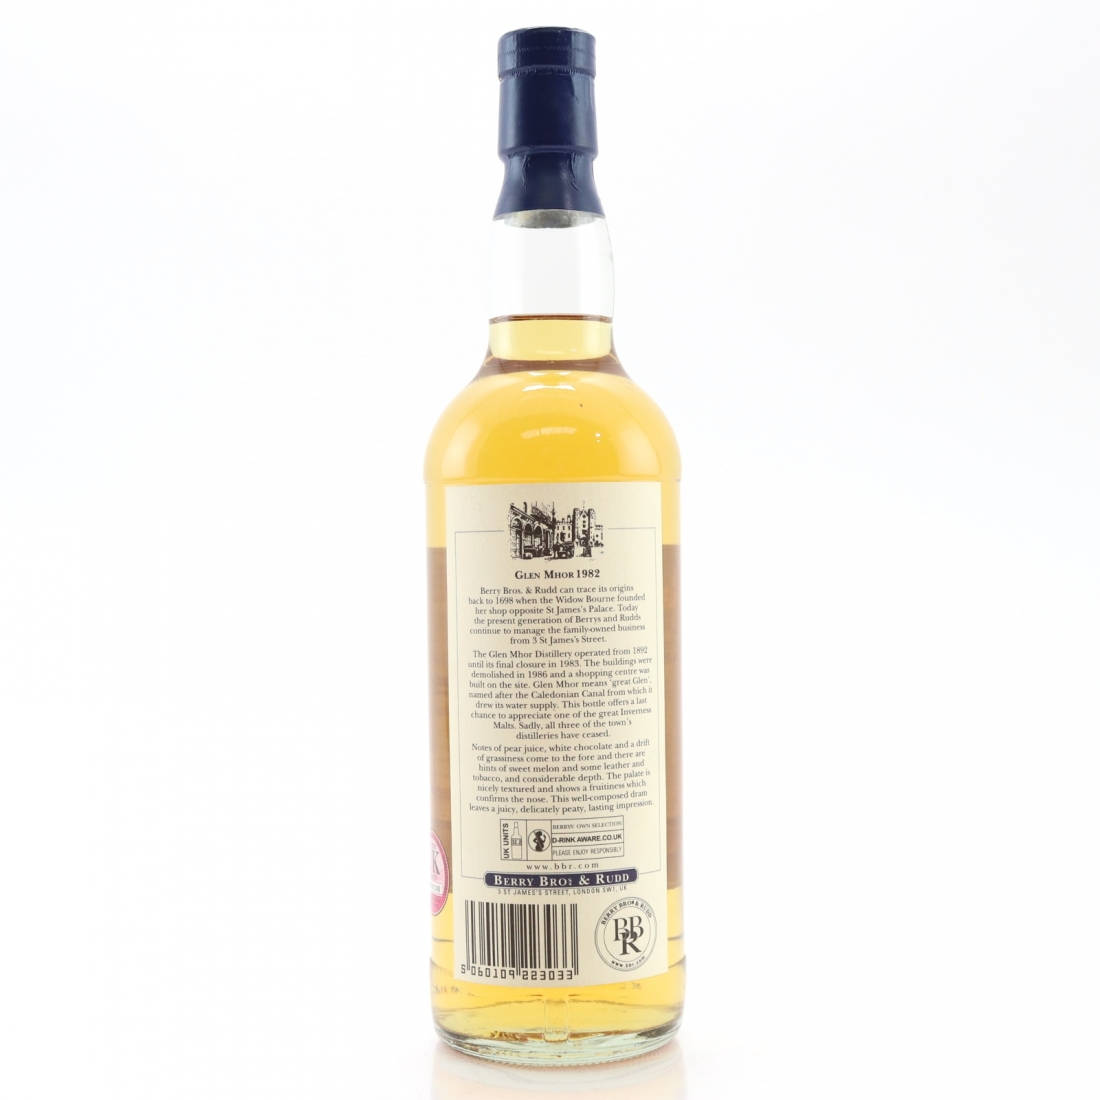 Glen Mhor 1982 Berry Brothers